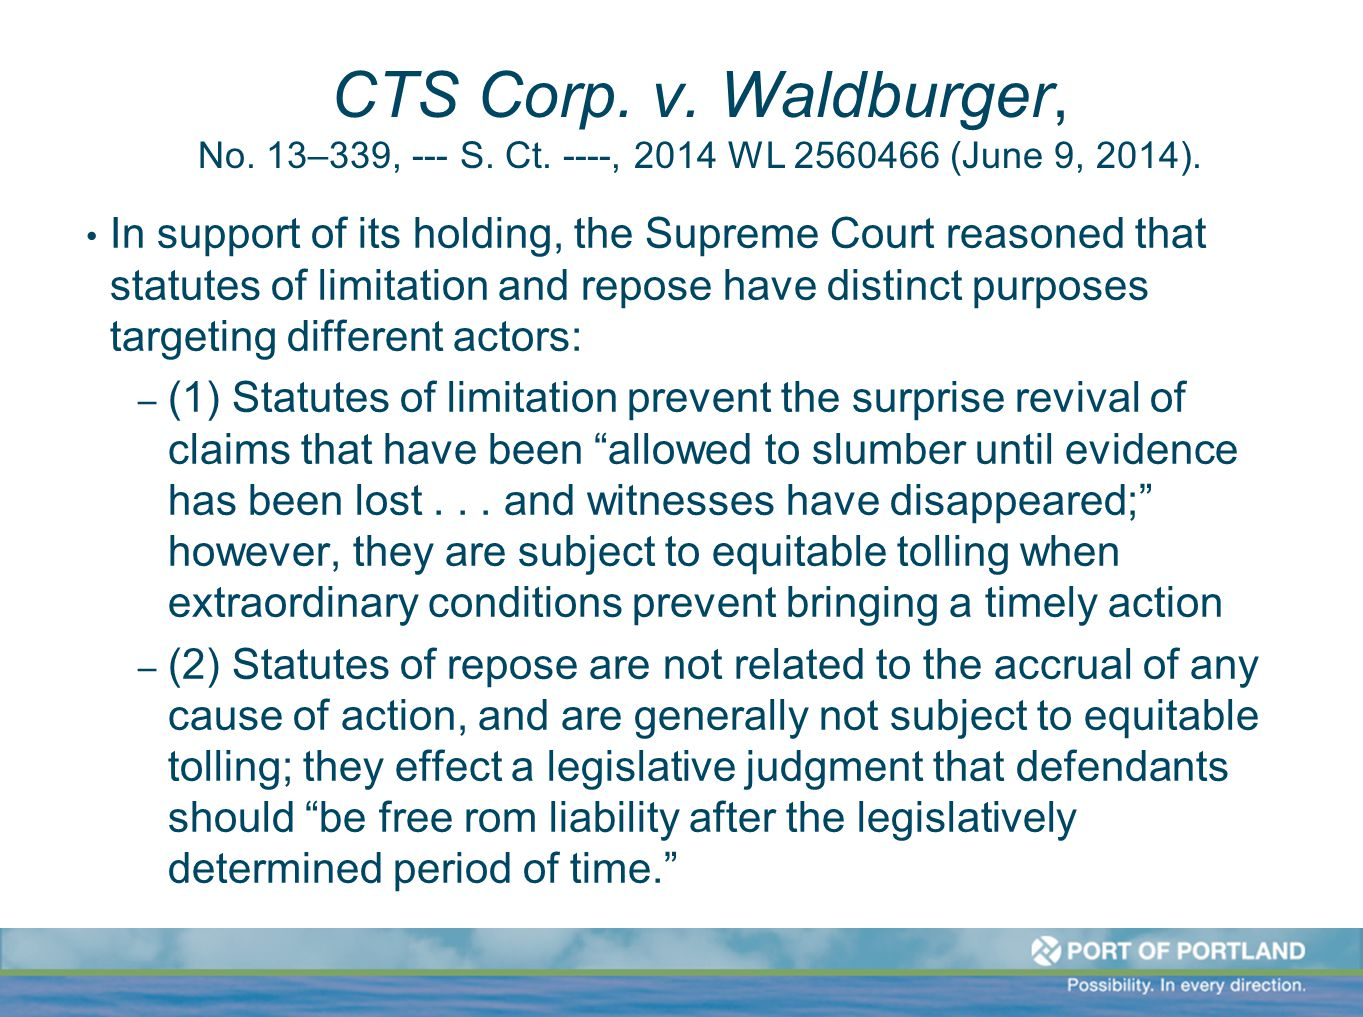 CTS Corp. v. Waldburger, No. 13–339, --- S. Ct. ----, 2014 WL 2560466 (June 9, 2014). In support of its holding, the Supreme Court reasoned that statu